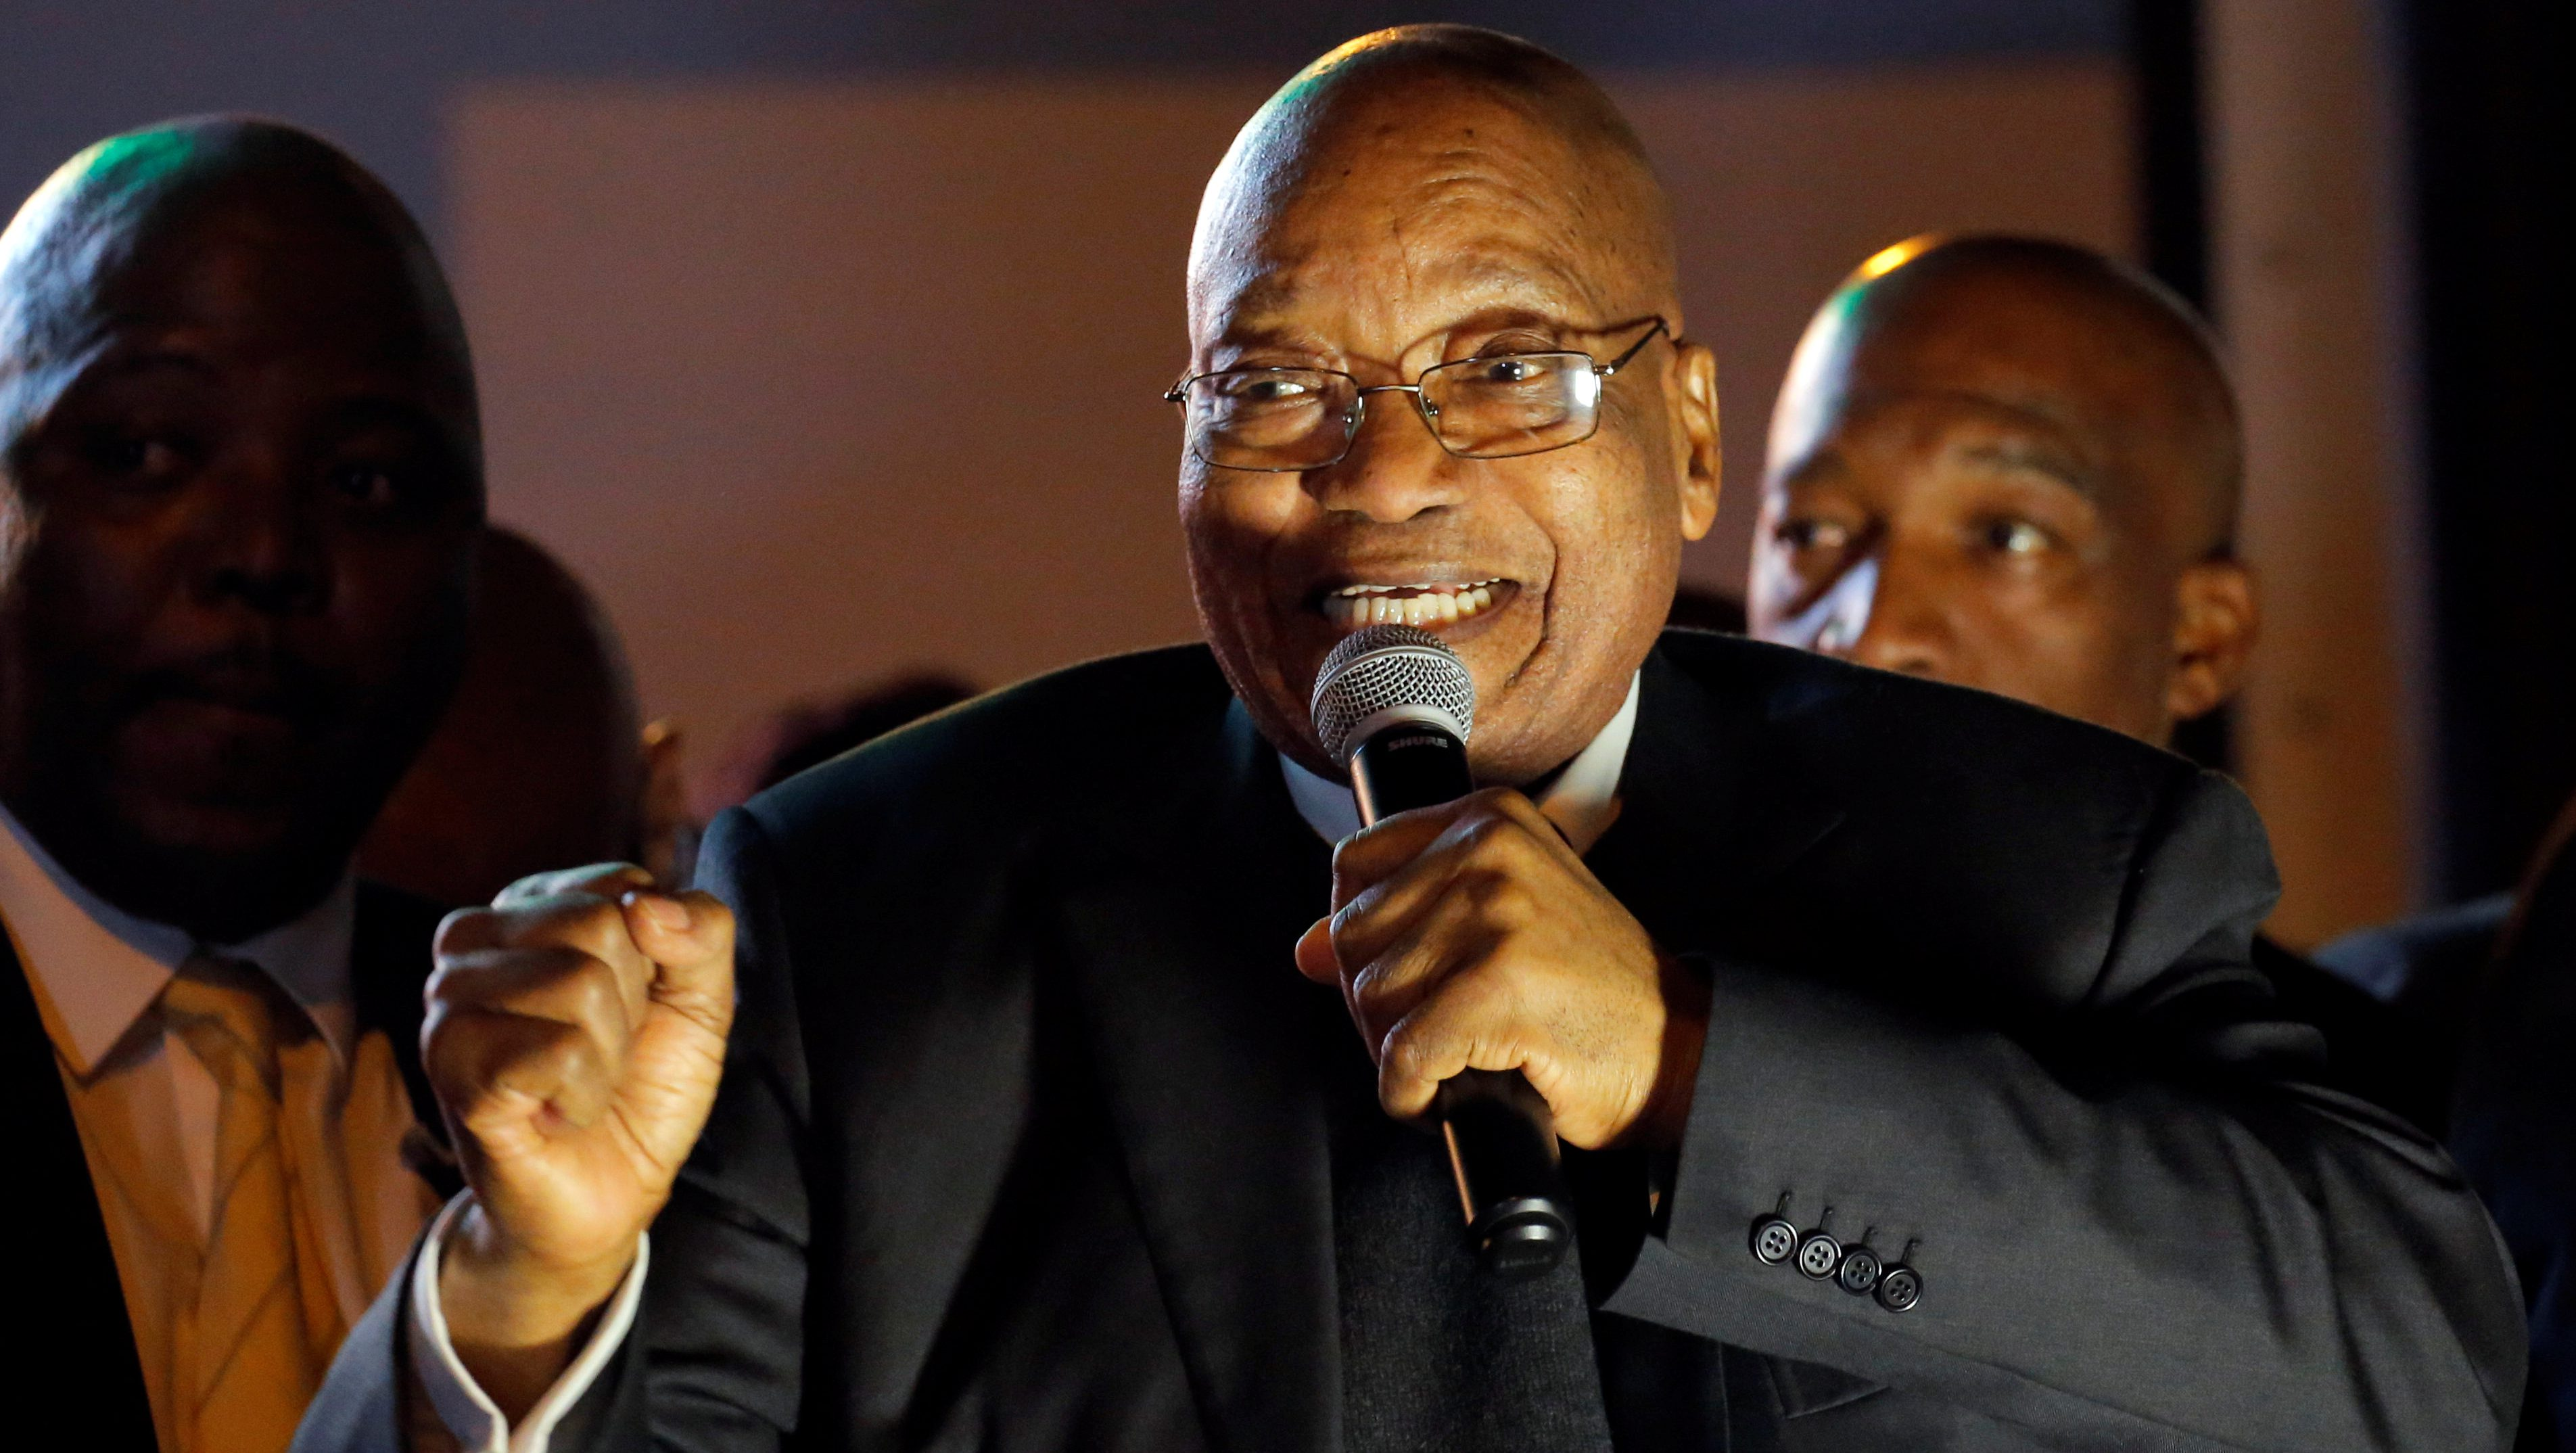 South African President Jacob Zuma addresses his supporters after he survived a no-confidence motion in Cape Town